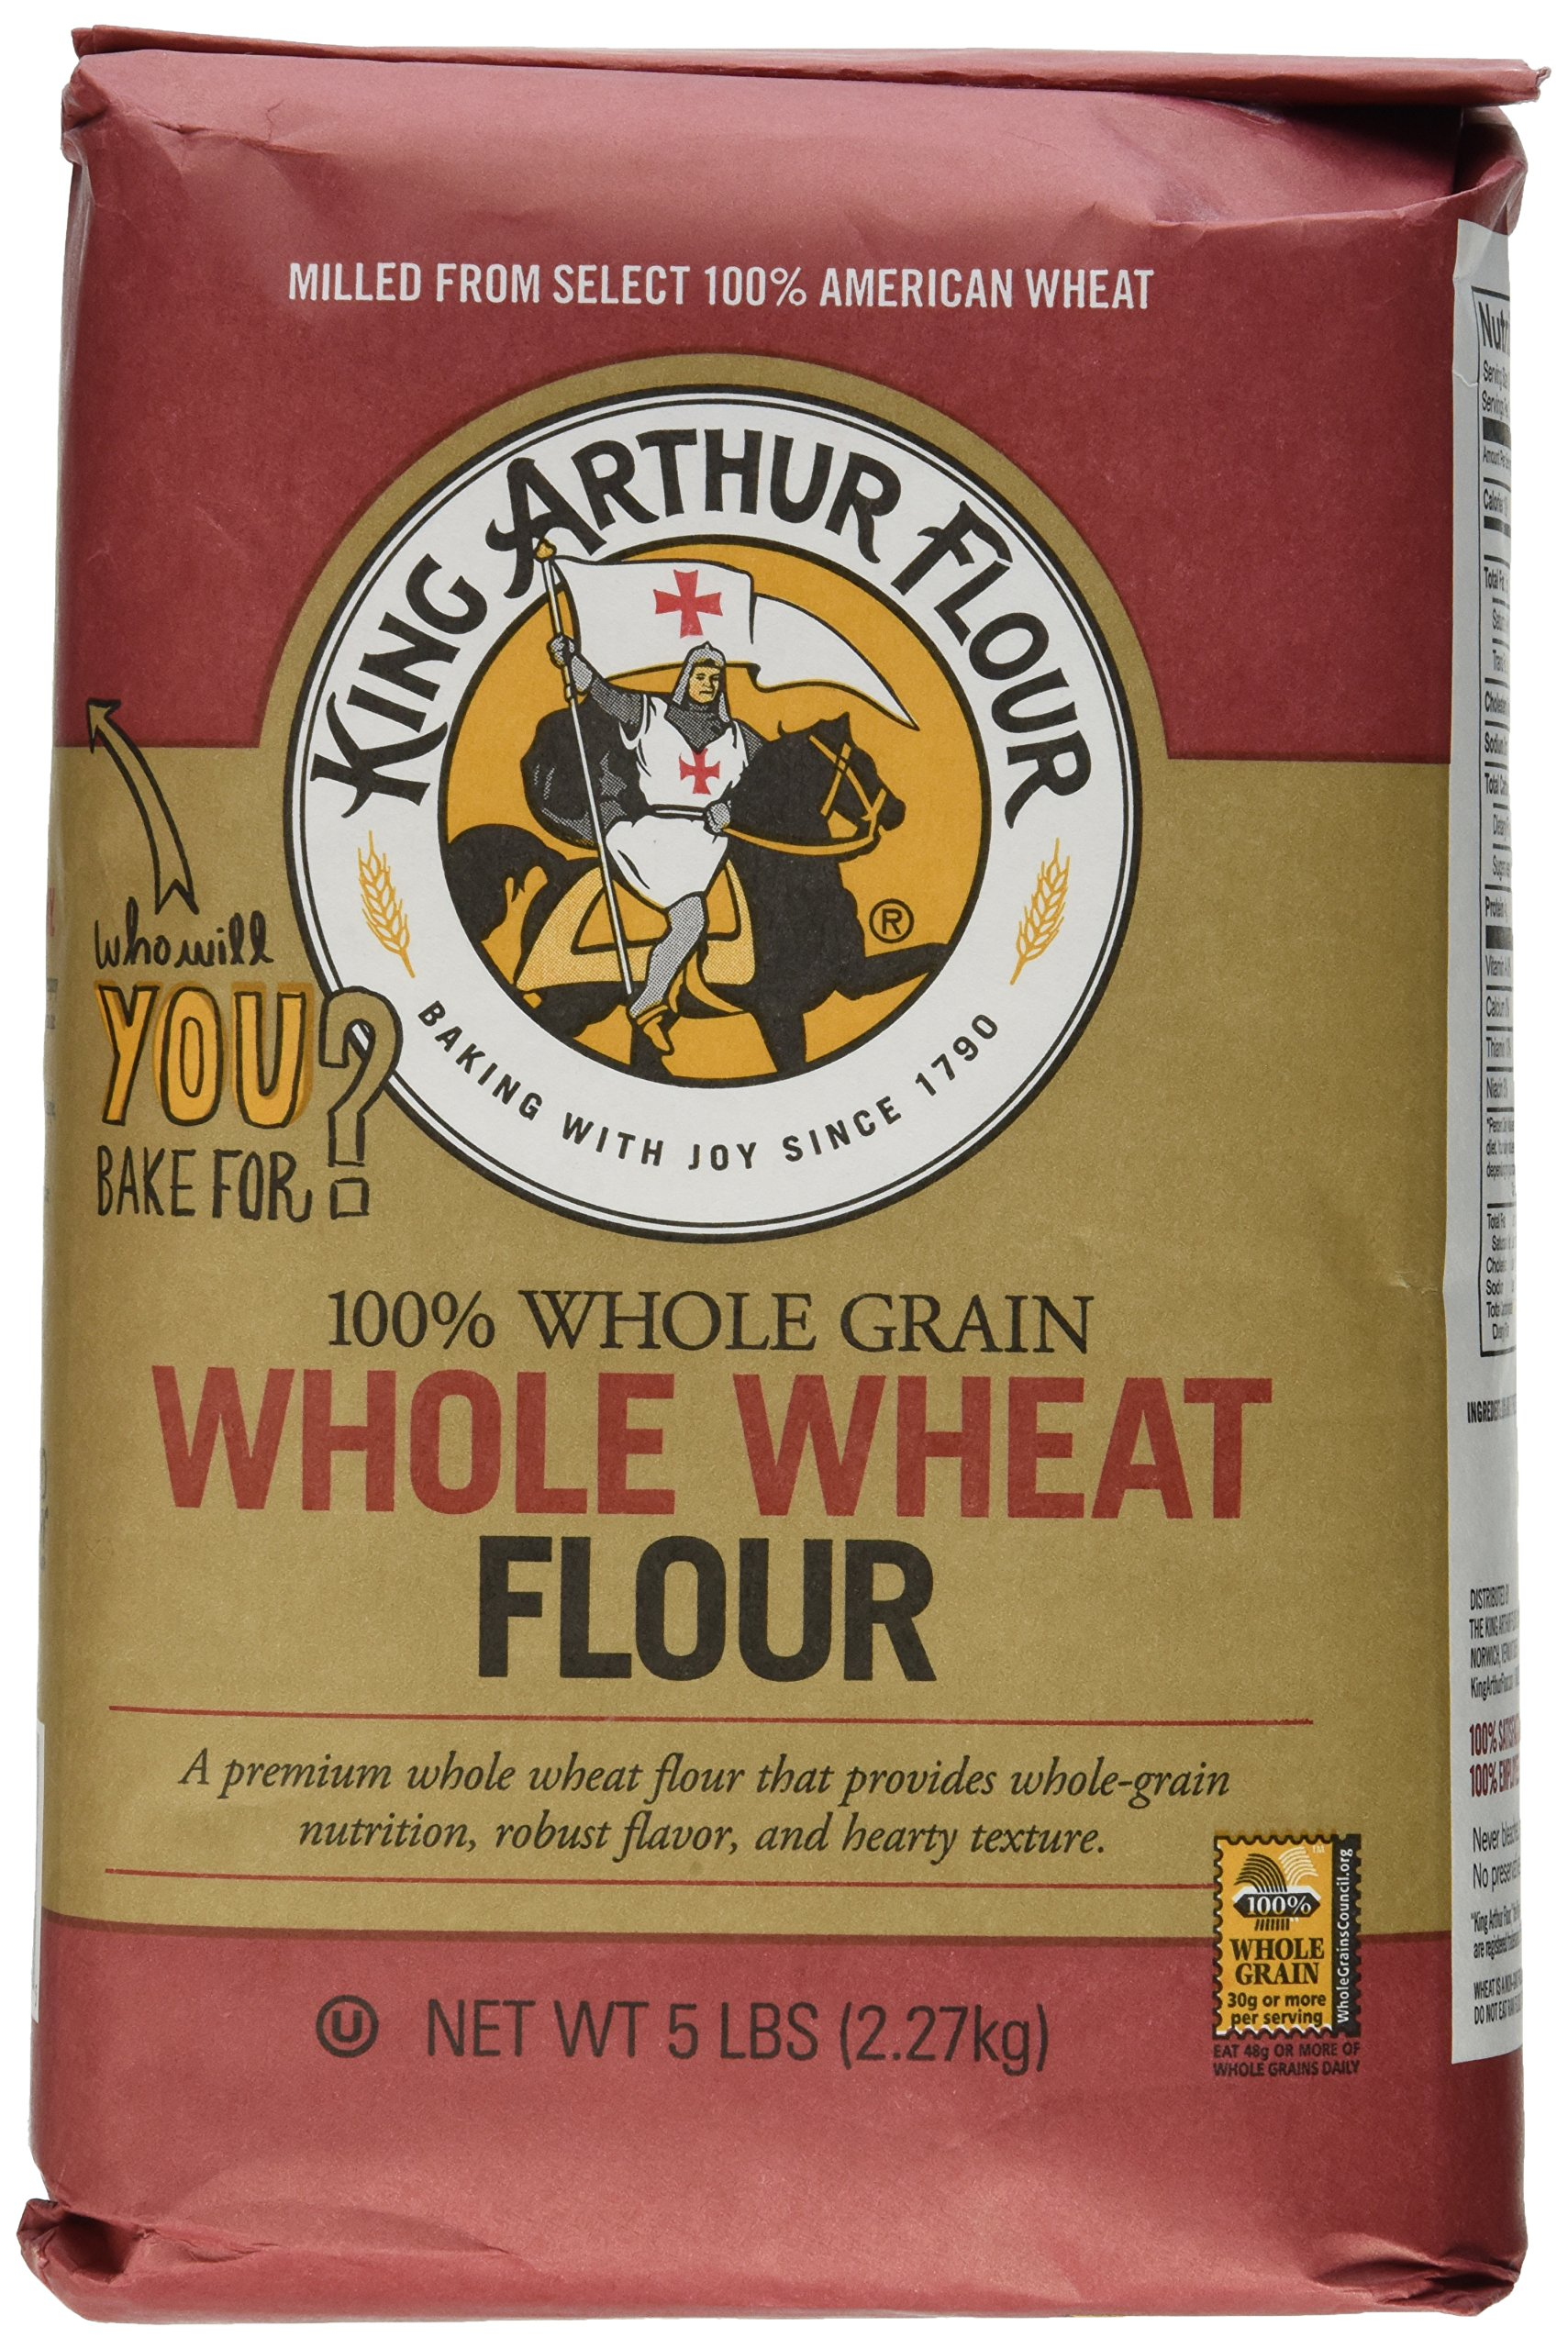 King Arthur Whole Wheat Flour - pack of 12 - 2